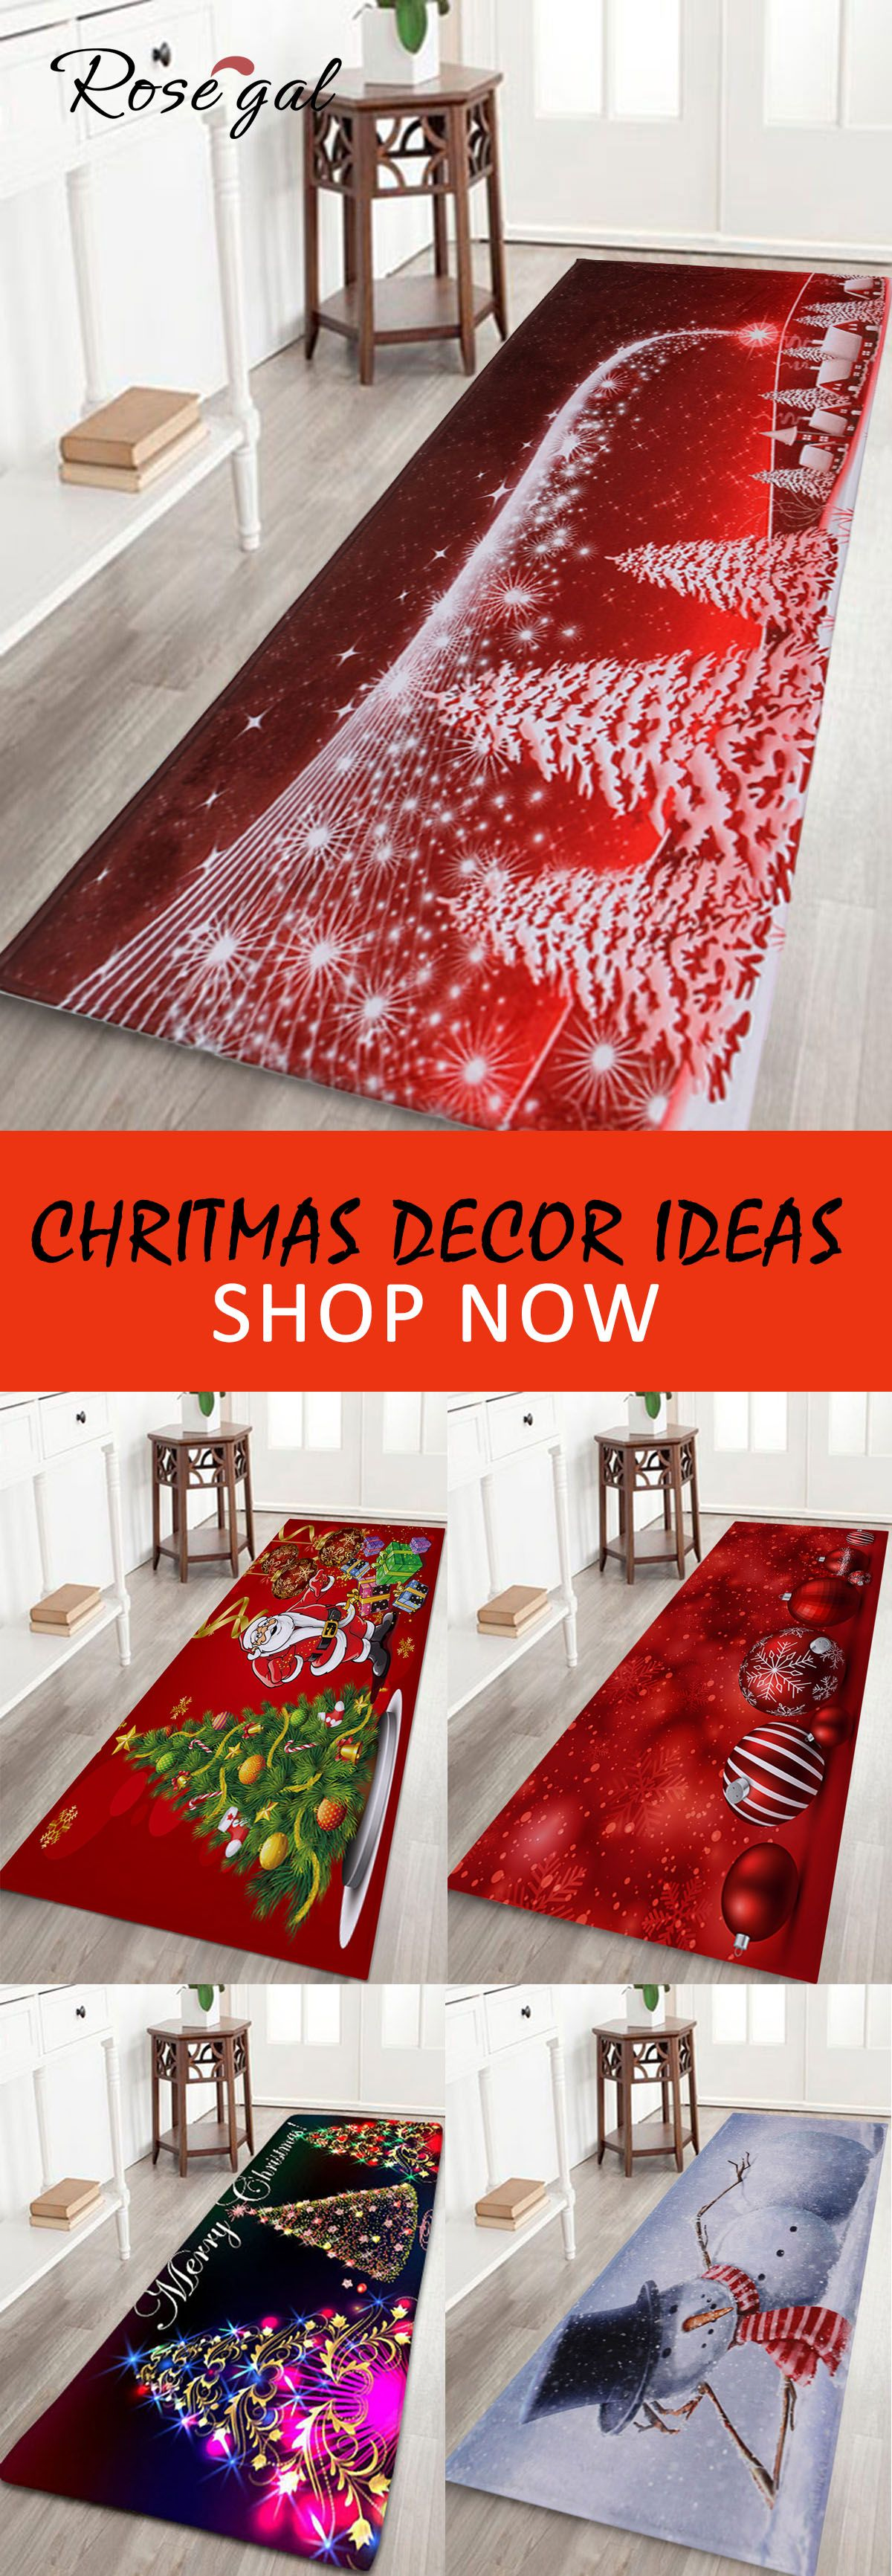 Free shipping over $49, up to 70% off, Rosegal Christmas decor home ...